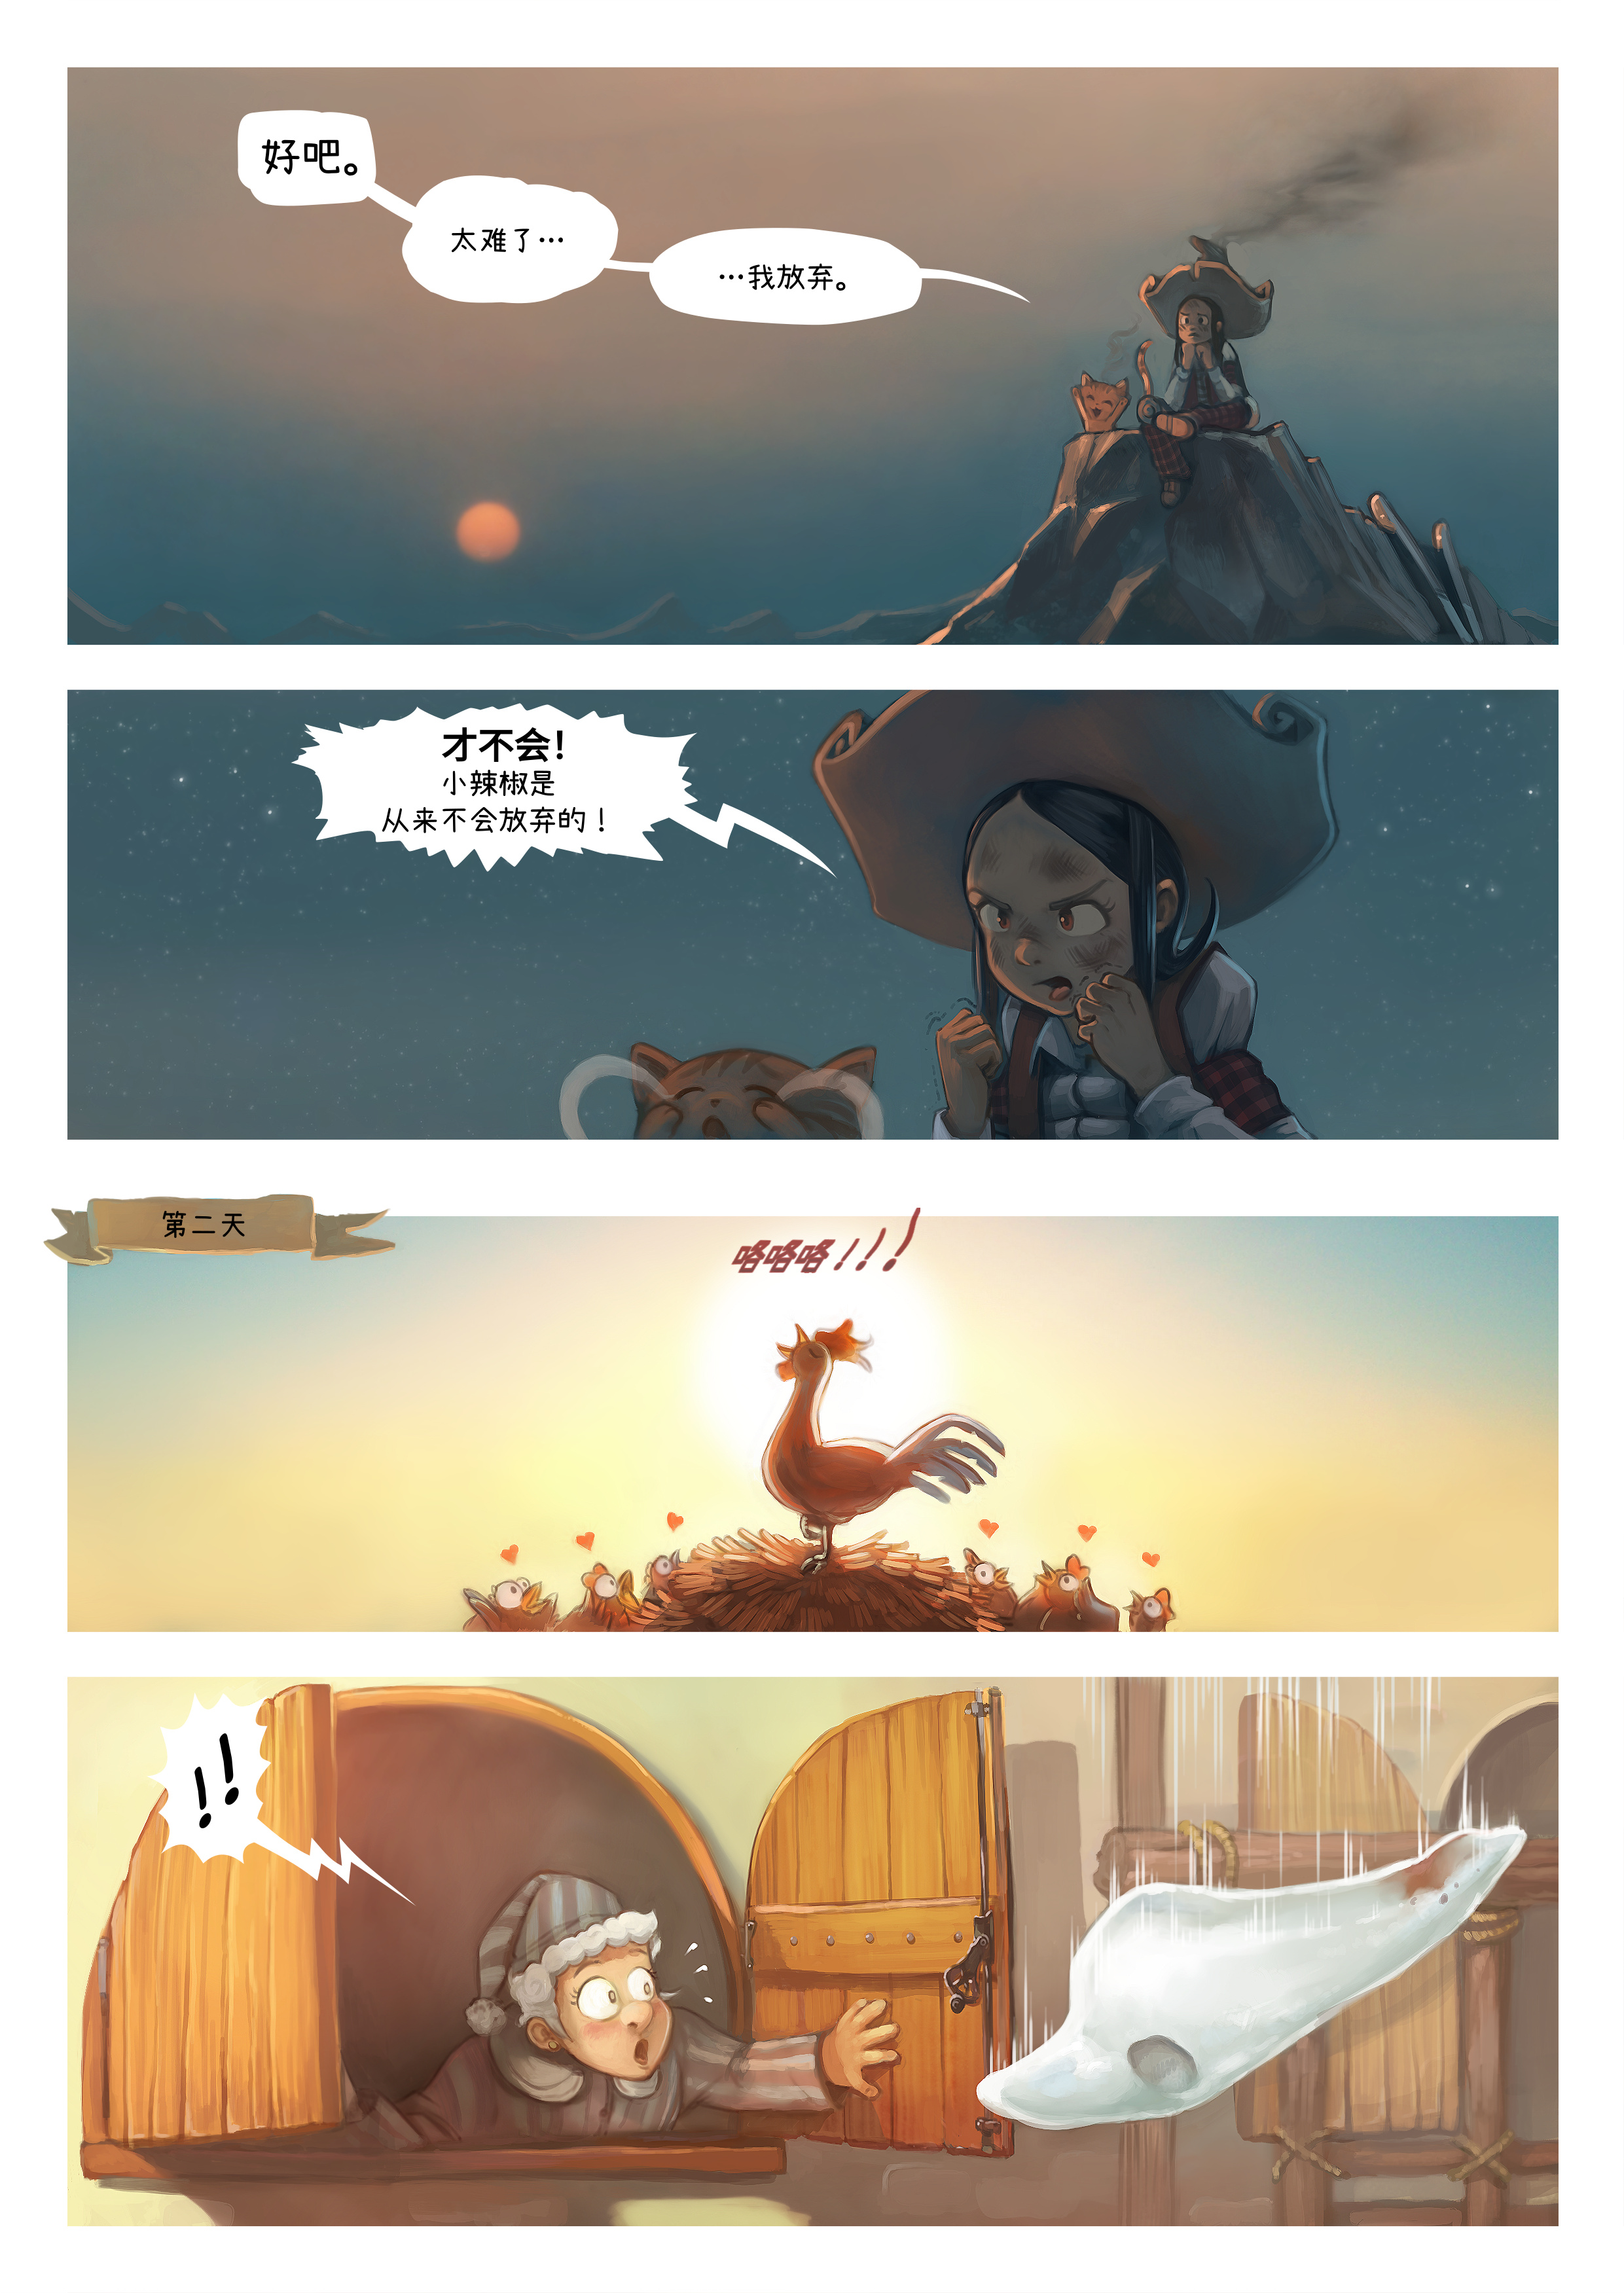 A webcomic page of Pepper&Carrot, 漫画全集 14 [cn], 页面 5